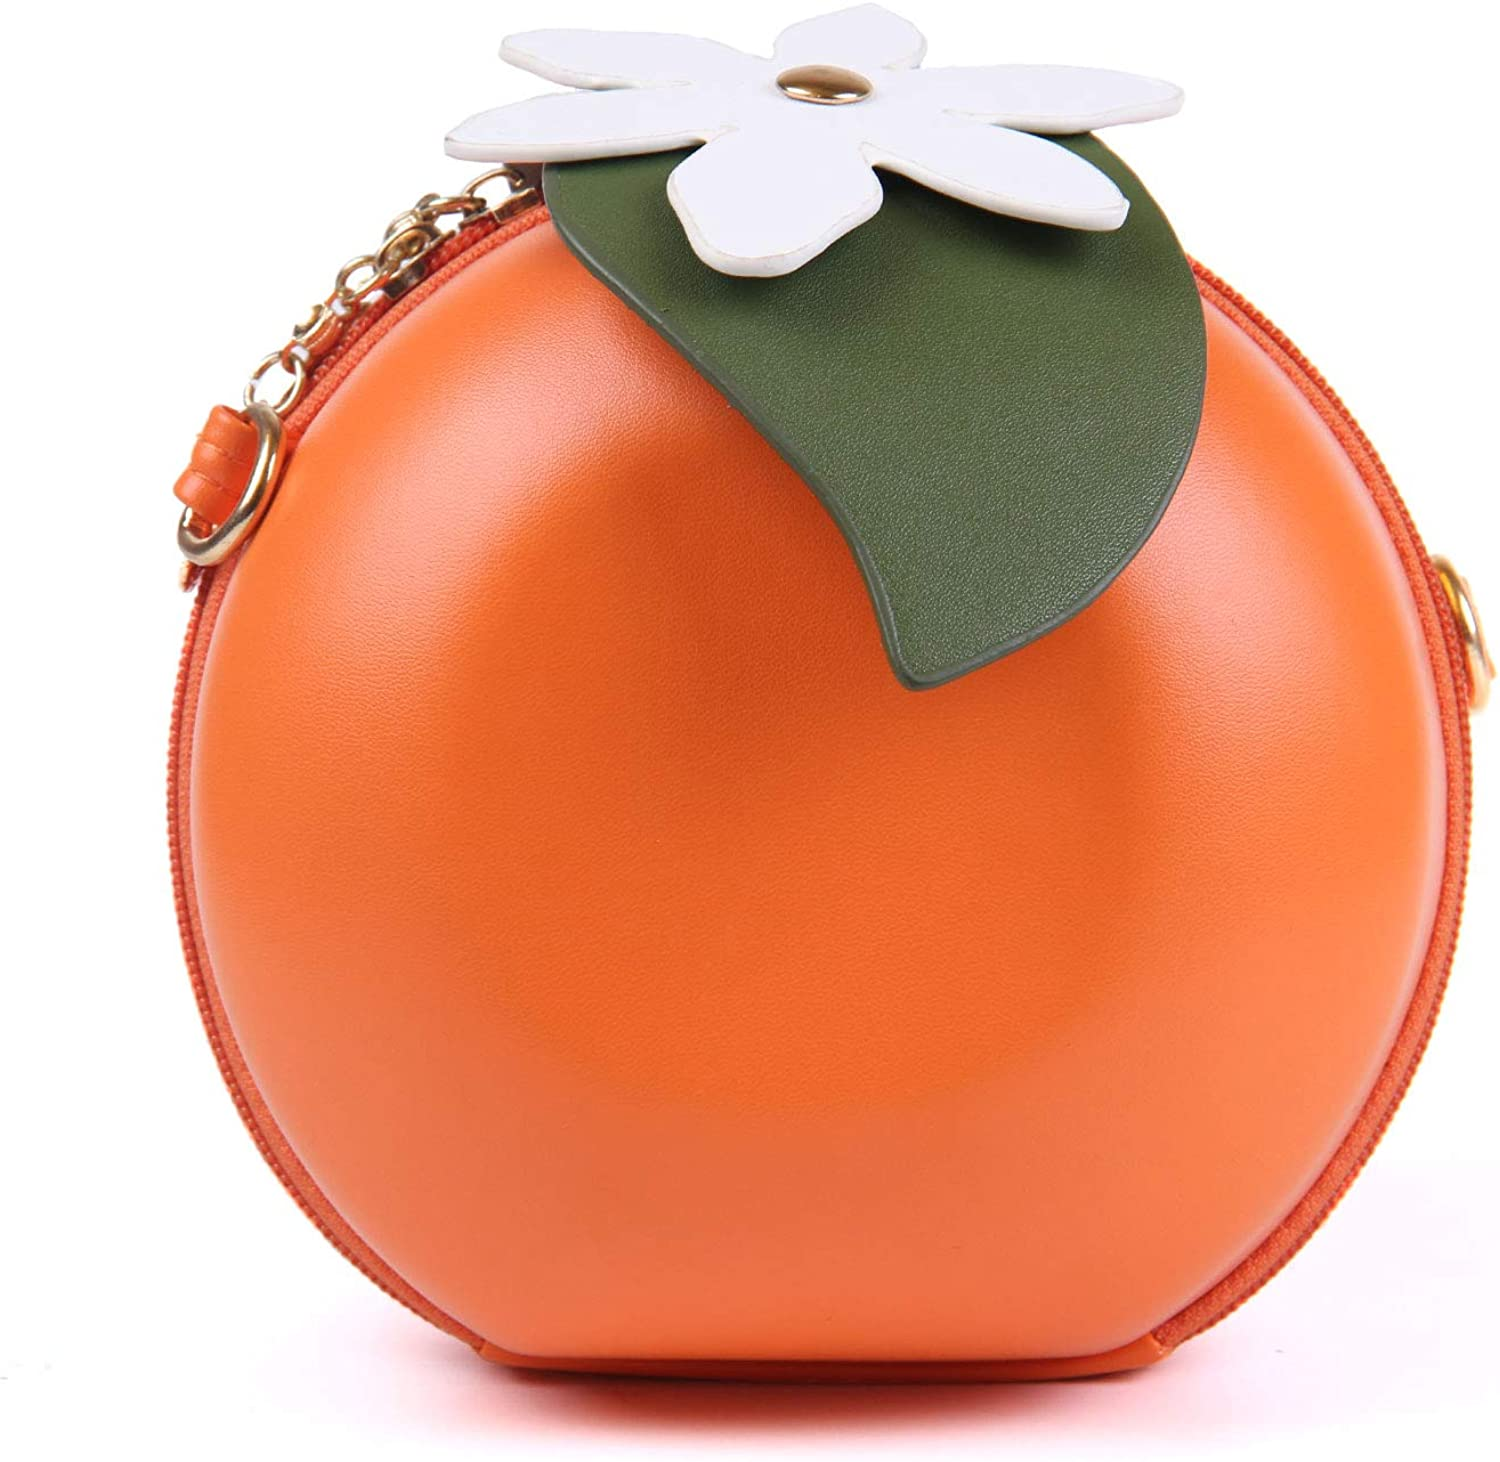 Small Crossbody Coin Purse Pineapple for Women Bags Leather Multicolor Smartphone Bags Purse With Removable Strap